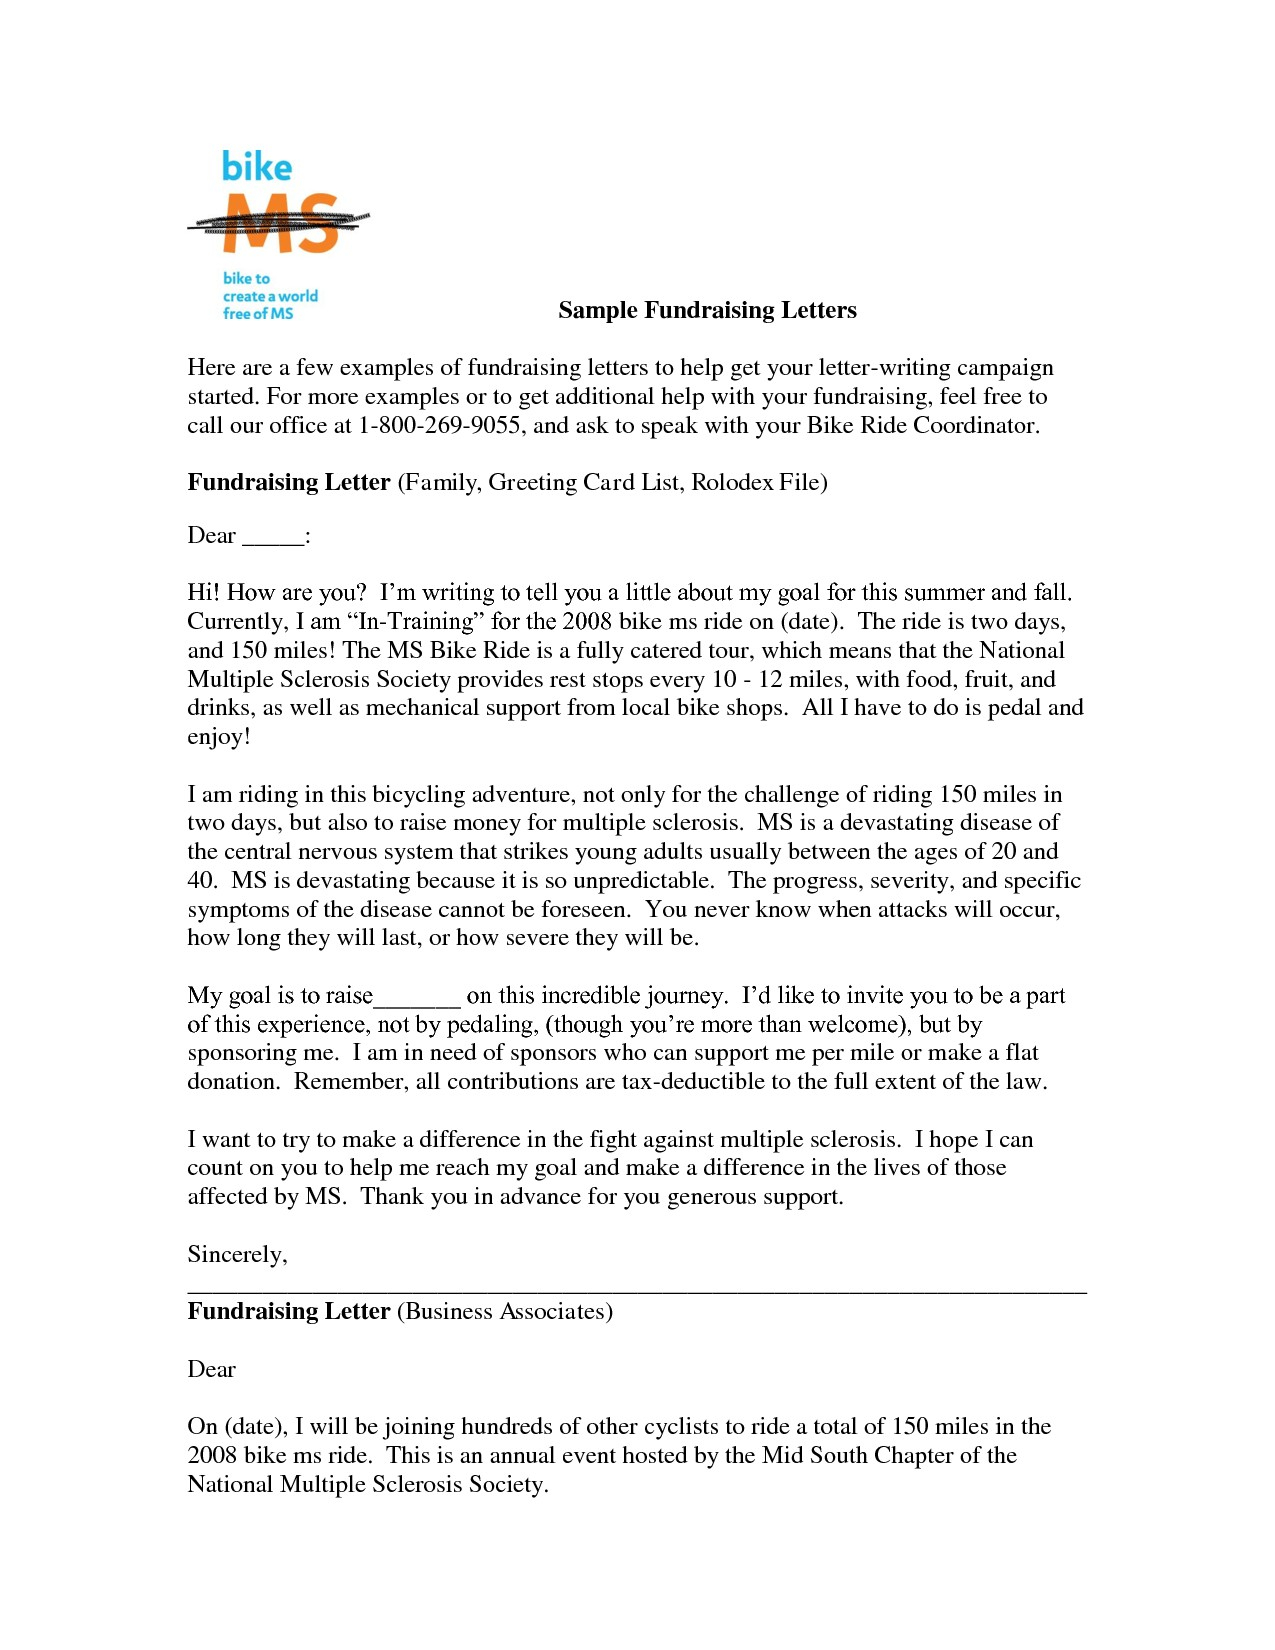 Fundraising Appeal Letter Template - Fundraising Appeal Letter format Best Sample Fundraising Letter